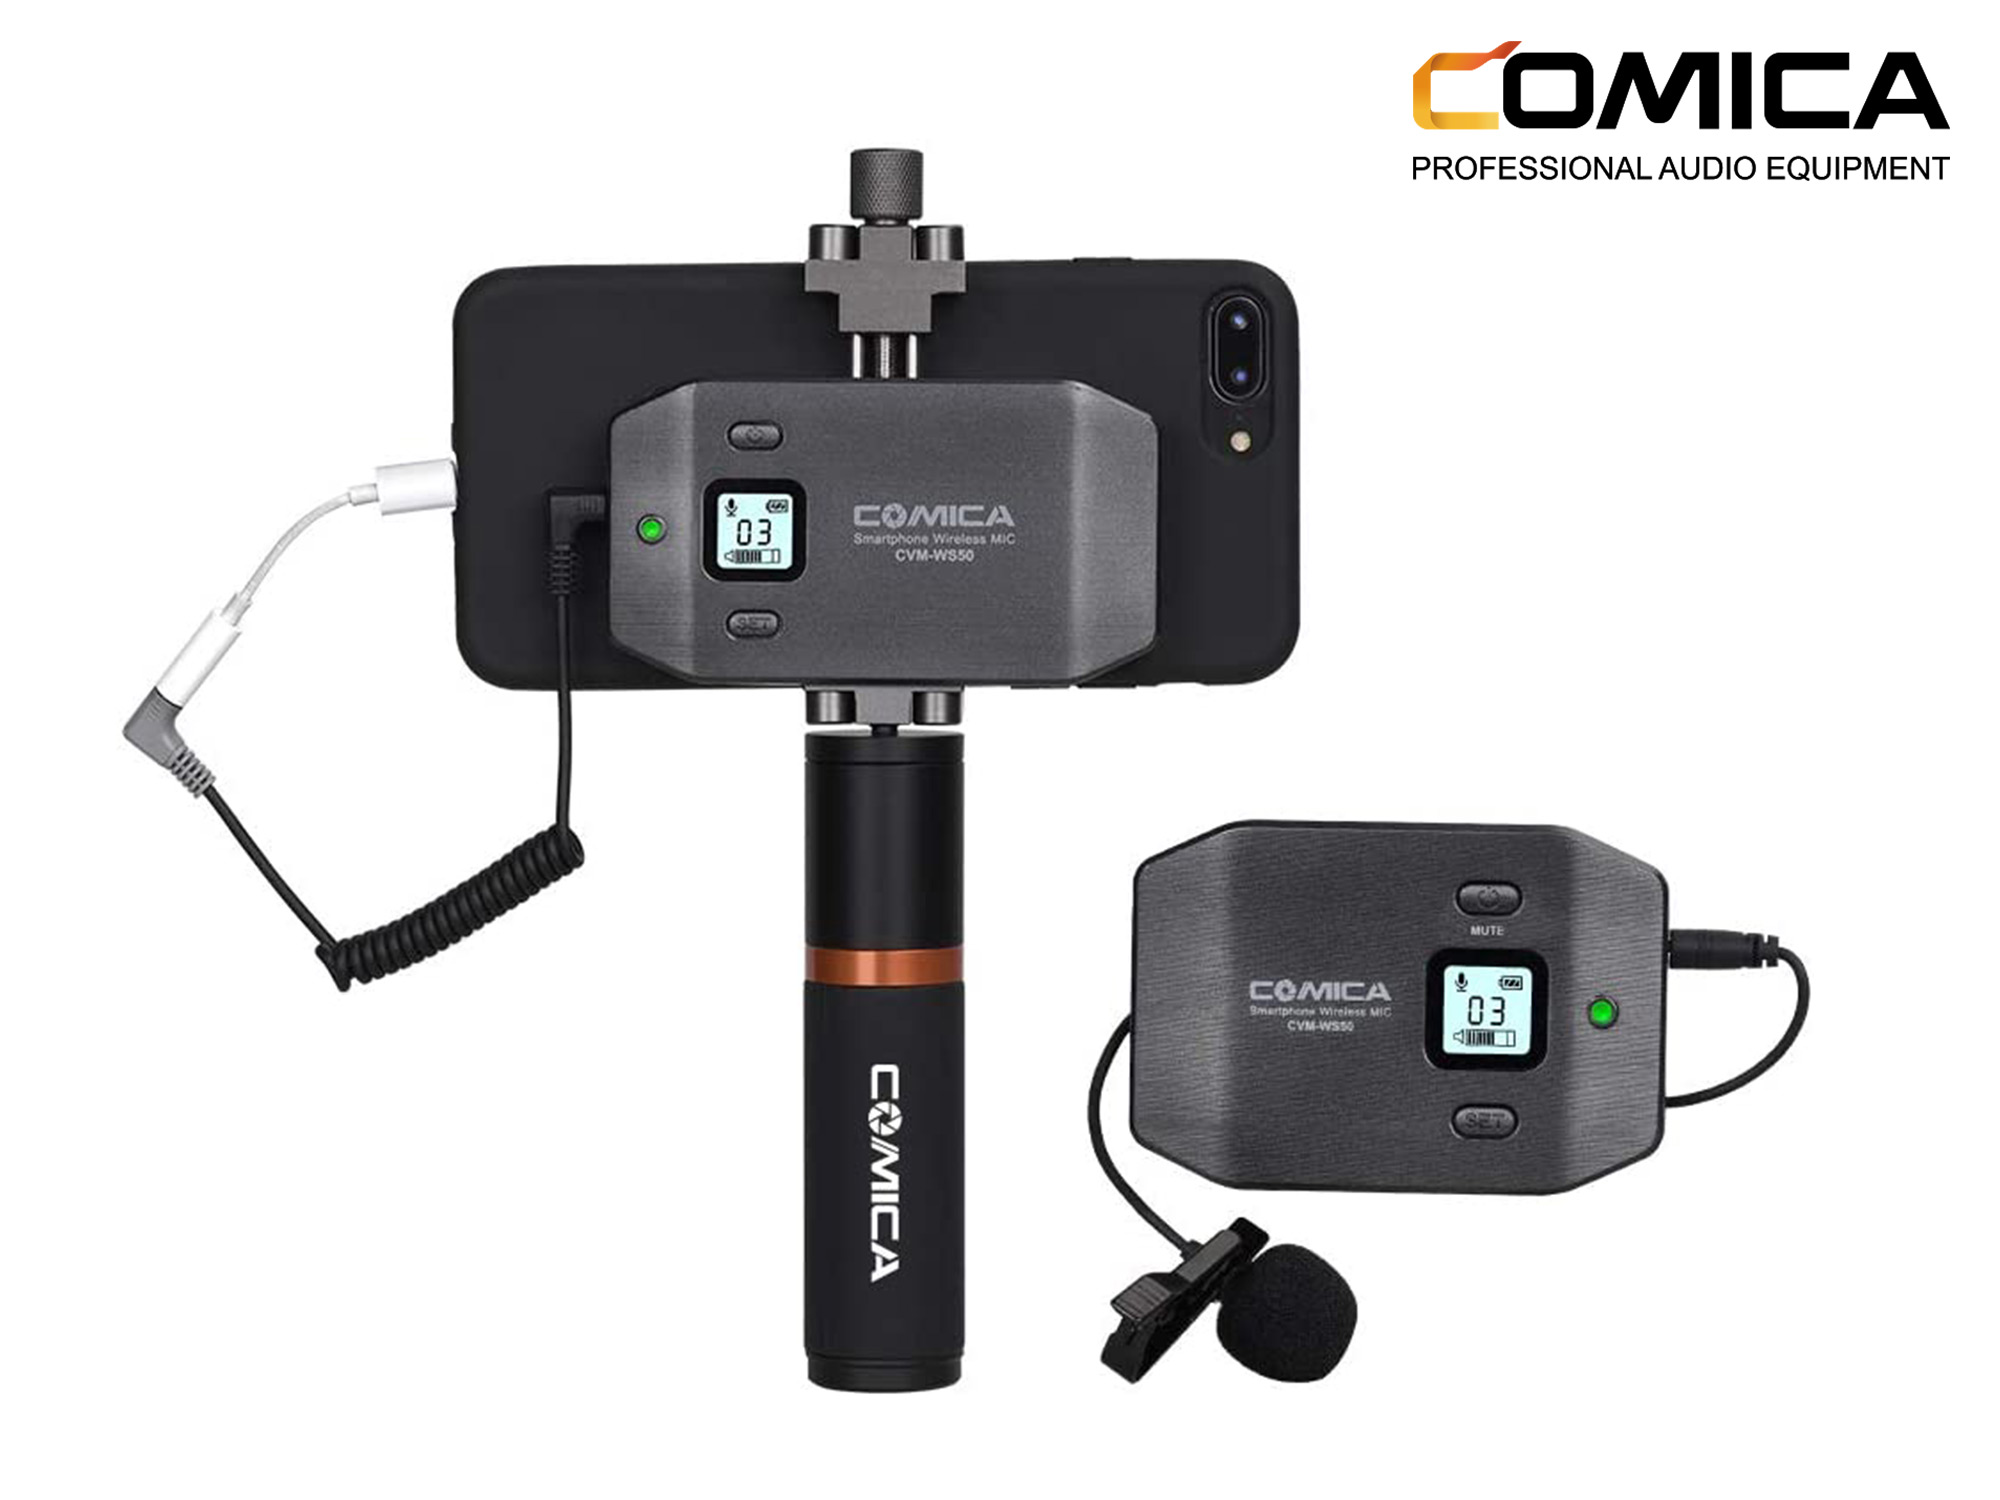 Comica 6-Channel UHF Wireless Smartphone Lavalier Microphone System with Phone Grip